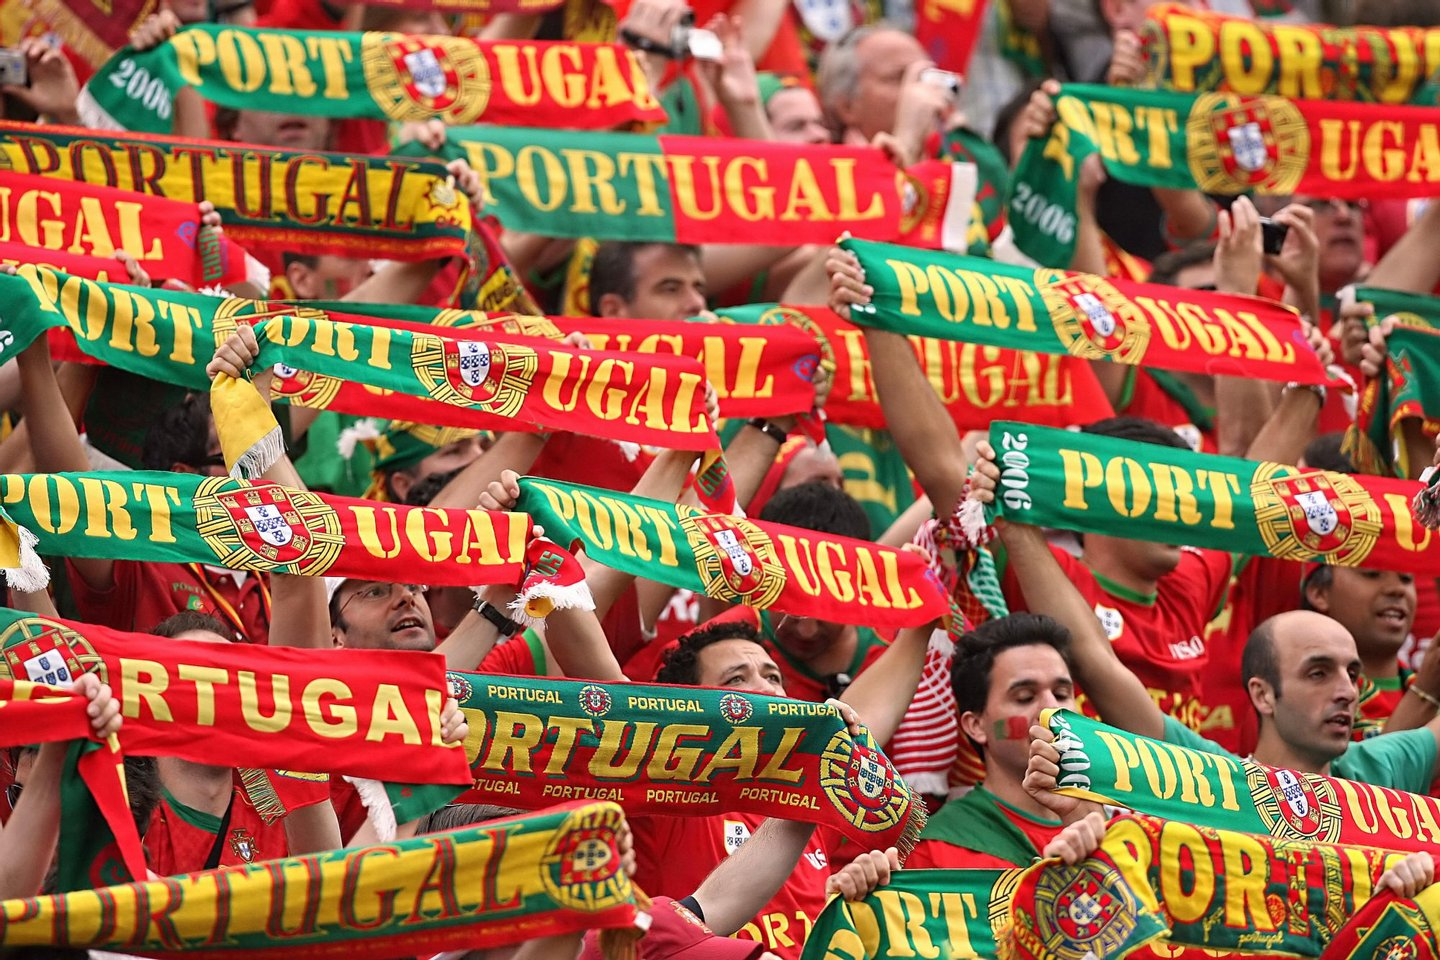 Frankfurt am Main, GERMANY: Portuguese supporters cheer their team prior to the World Cup 2006 group D football game Portugual vs.Iran 17 June 2006 at Frankfurt stadium. AFP PHOTO PATRIK STOLLARZ (Photo credit should read PATRIK STOLLARZ/AFP/Getty Images)